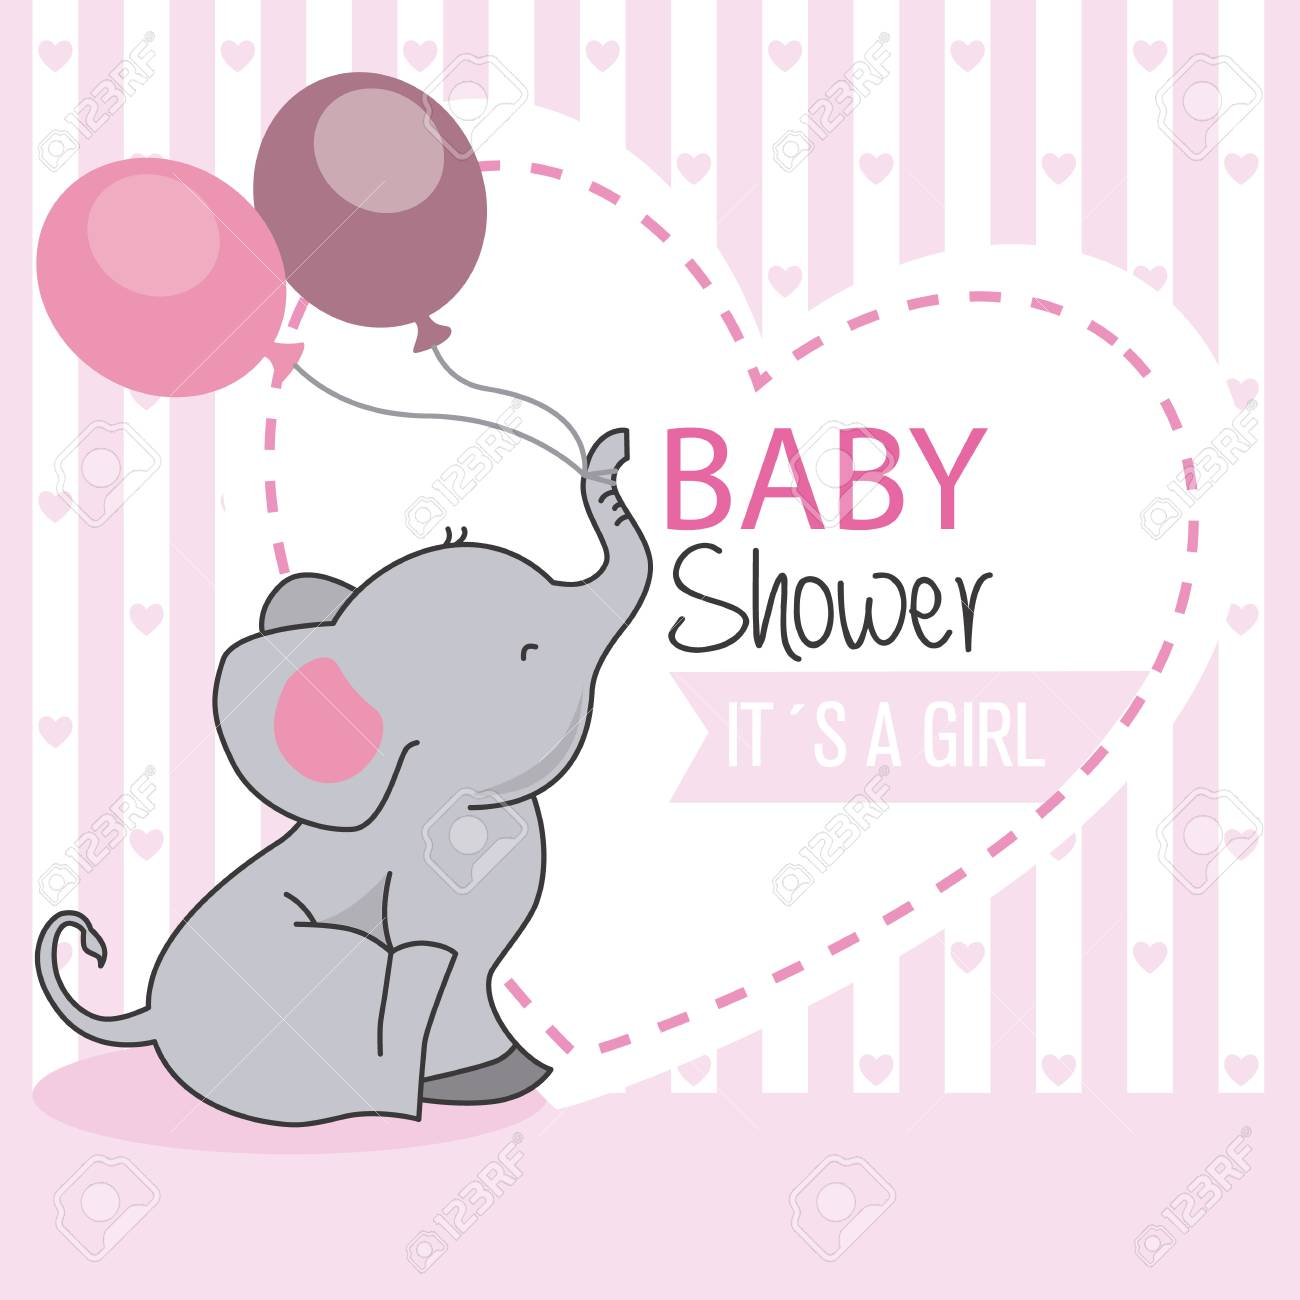 Baby Shower Girl Elephant With Balloons Royalty Free Cliparts Vectors And Stock Illustration Image 83262282